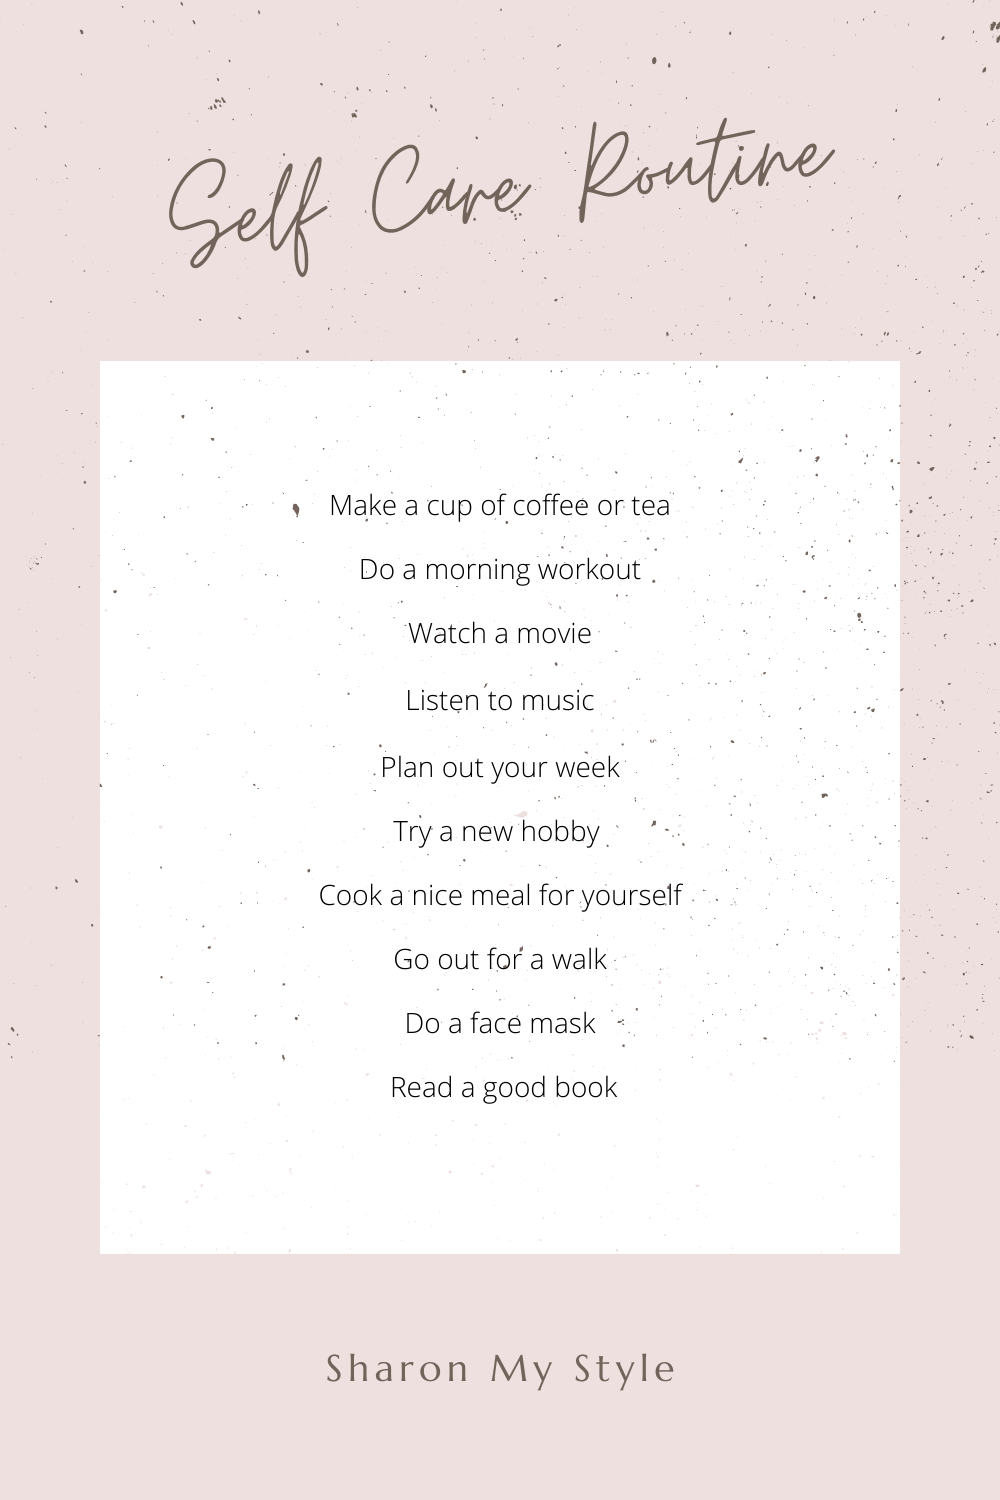 self care routine to relax your body and mind